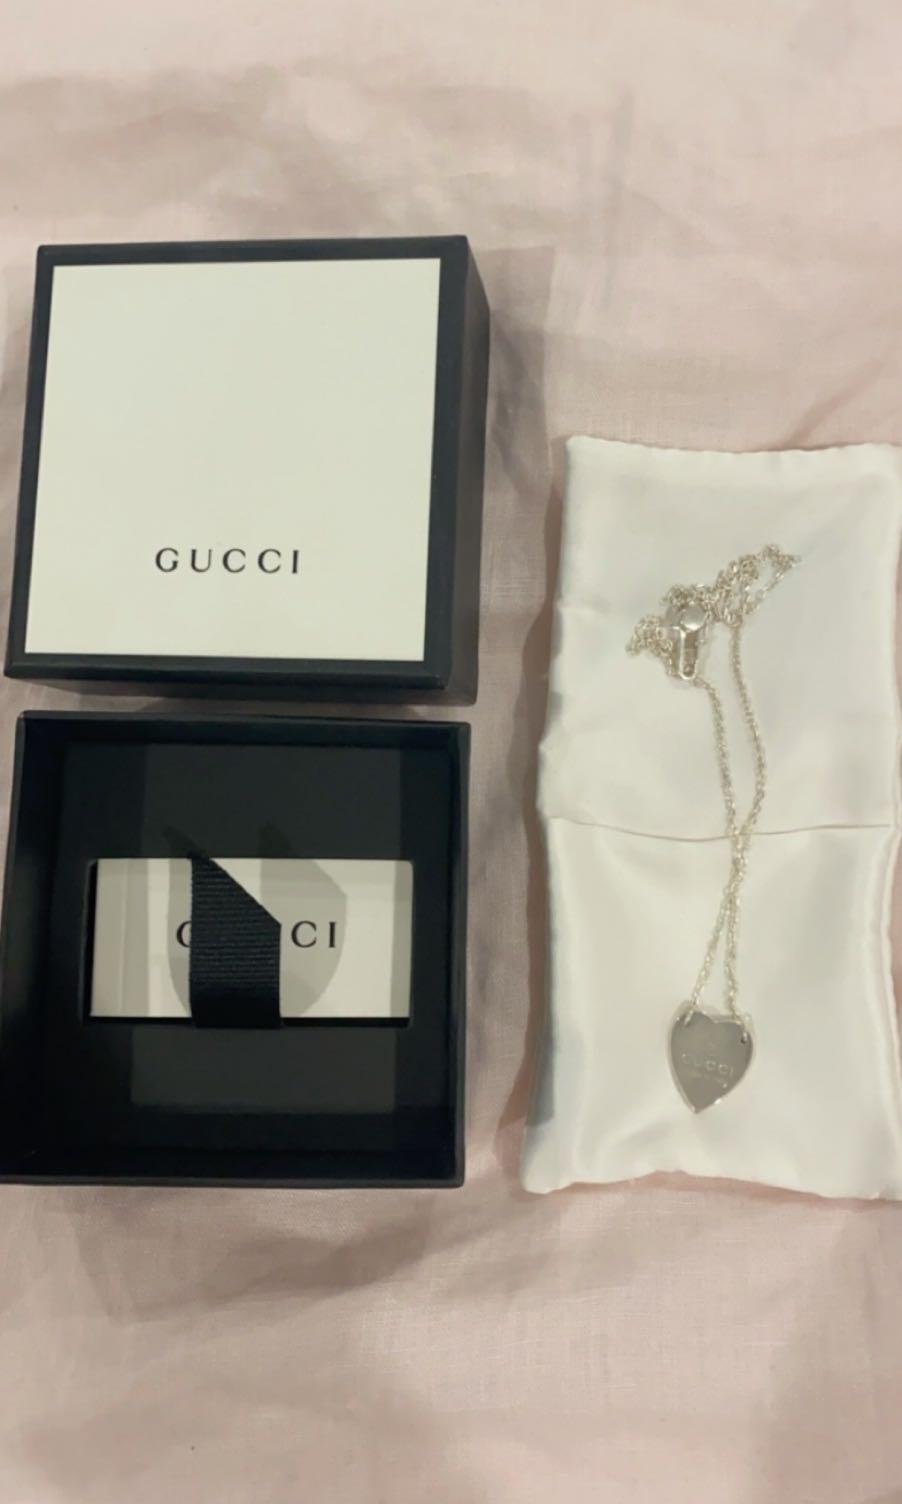 Brand new silver Gucci heart necklace never worn can include shopping bag if preferred. Length is adjustable from 45cm to 48 cm